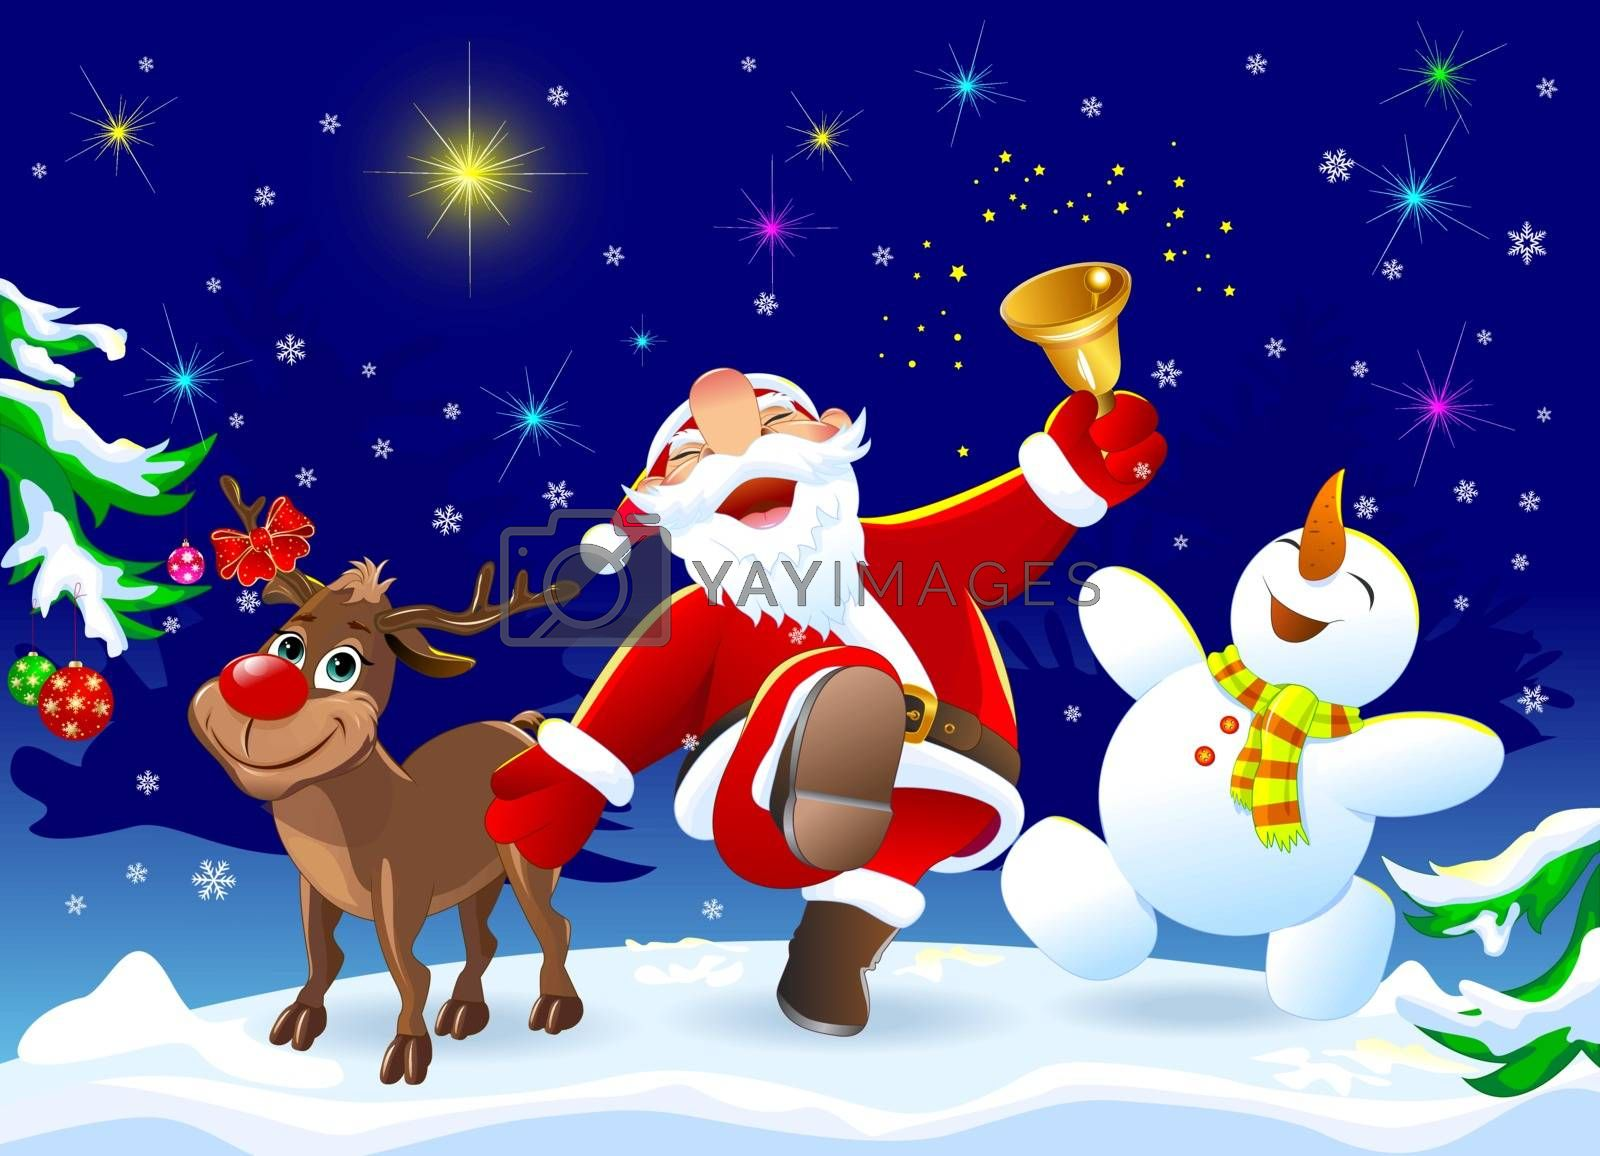 Santa Claus, deer Rudolph and snowman in the winter forest. Merry Santa Claus, deer and snowman are happy on Christmas night.